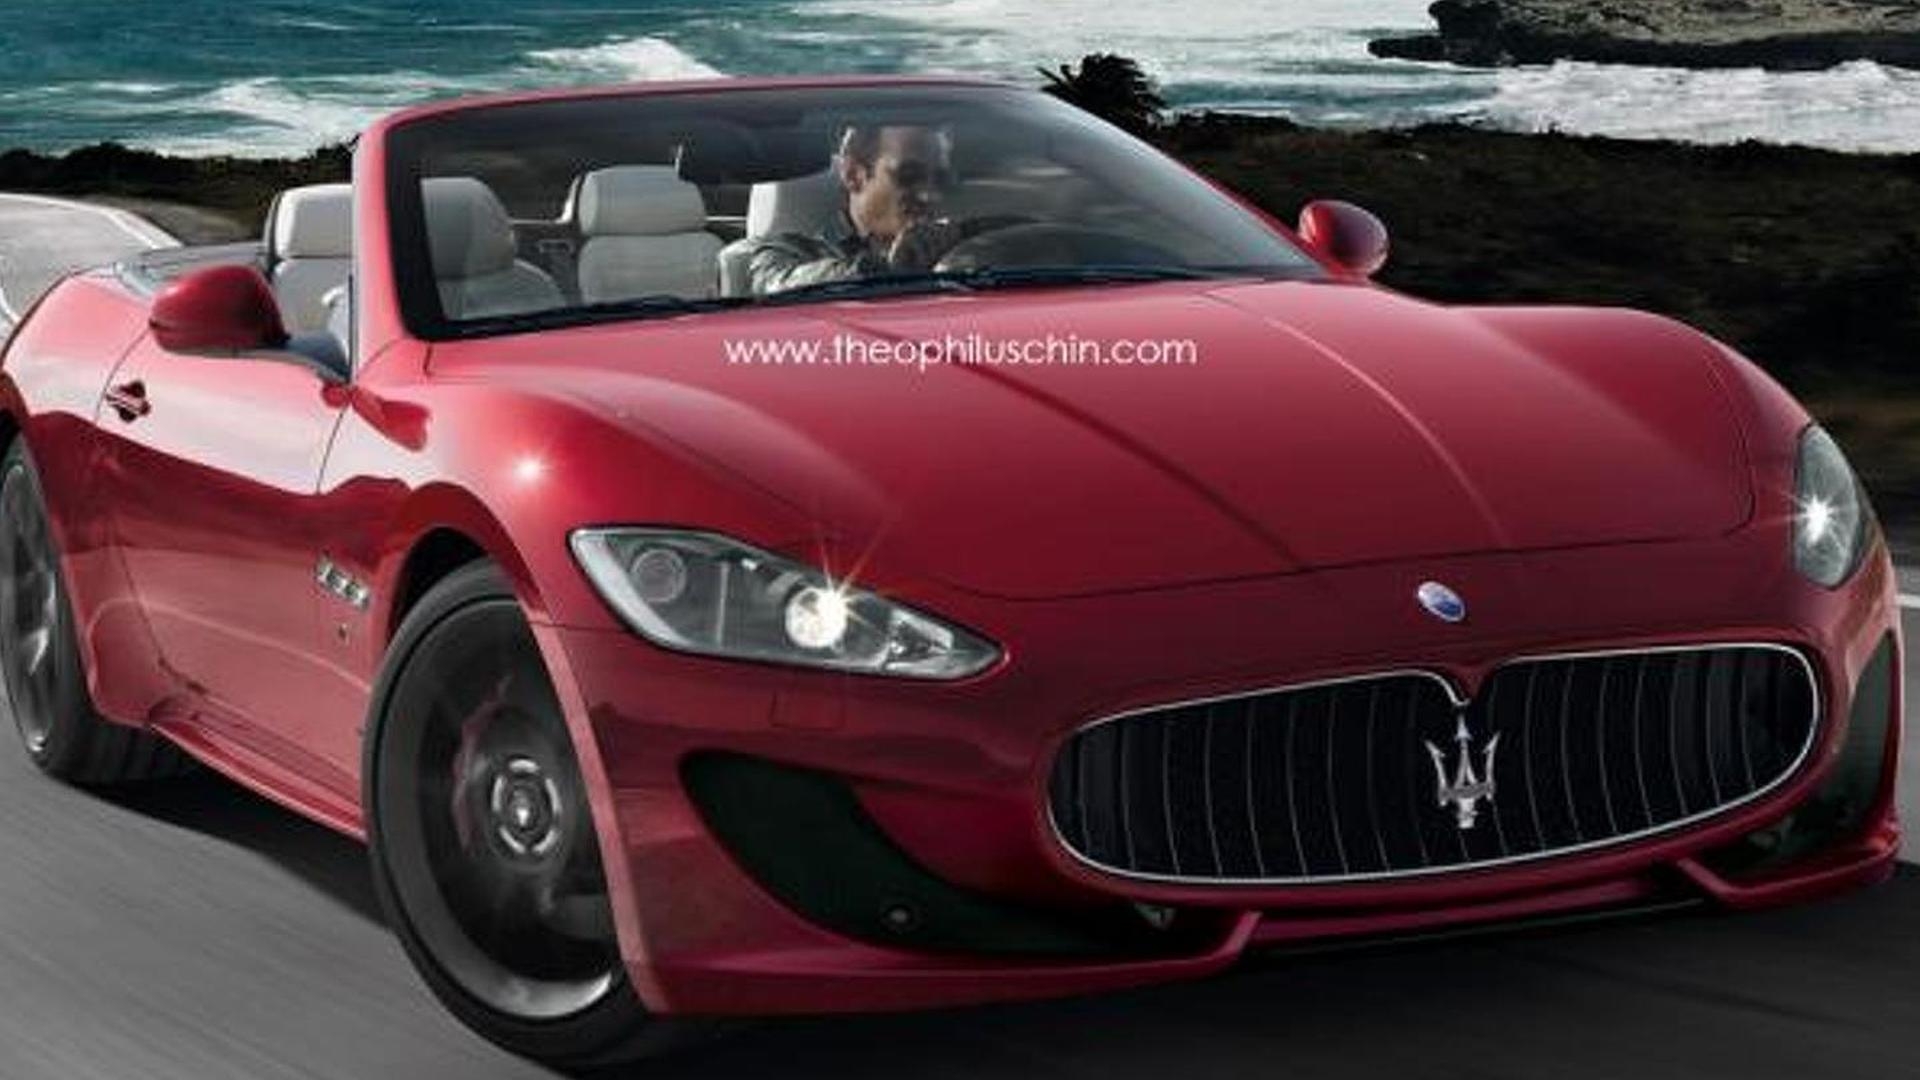 Maserati GranCabrio Sport rendered & speculated